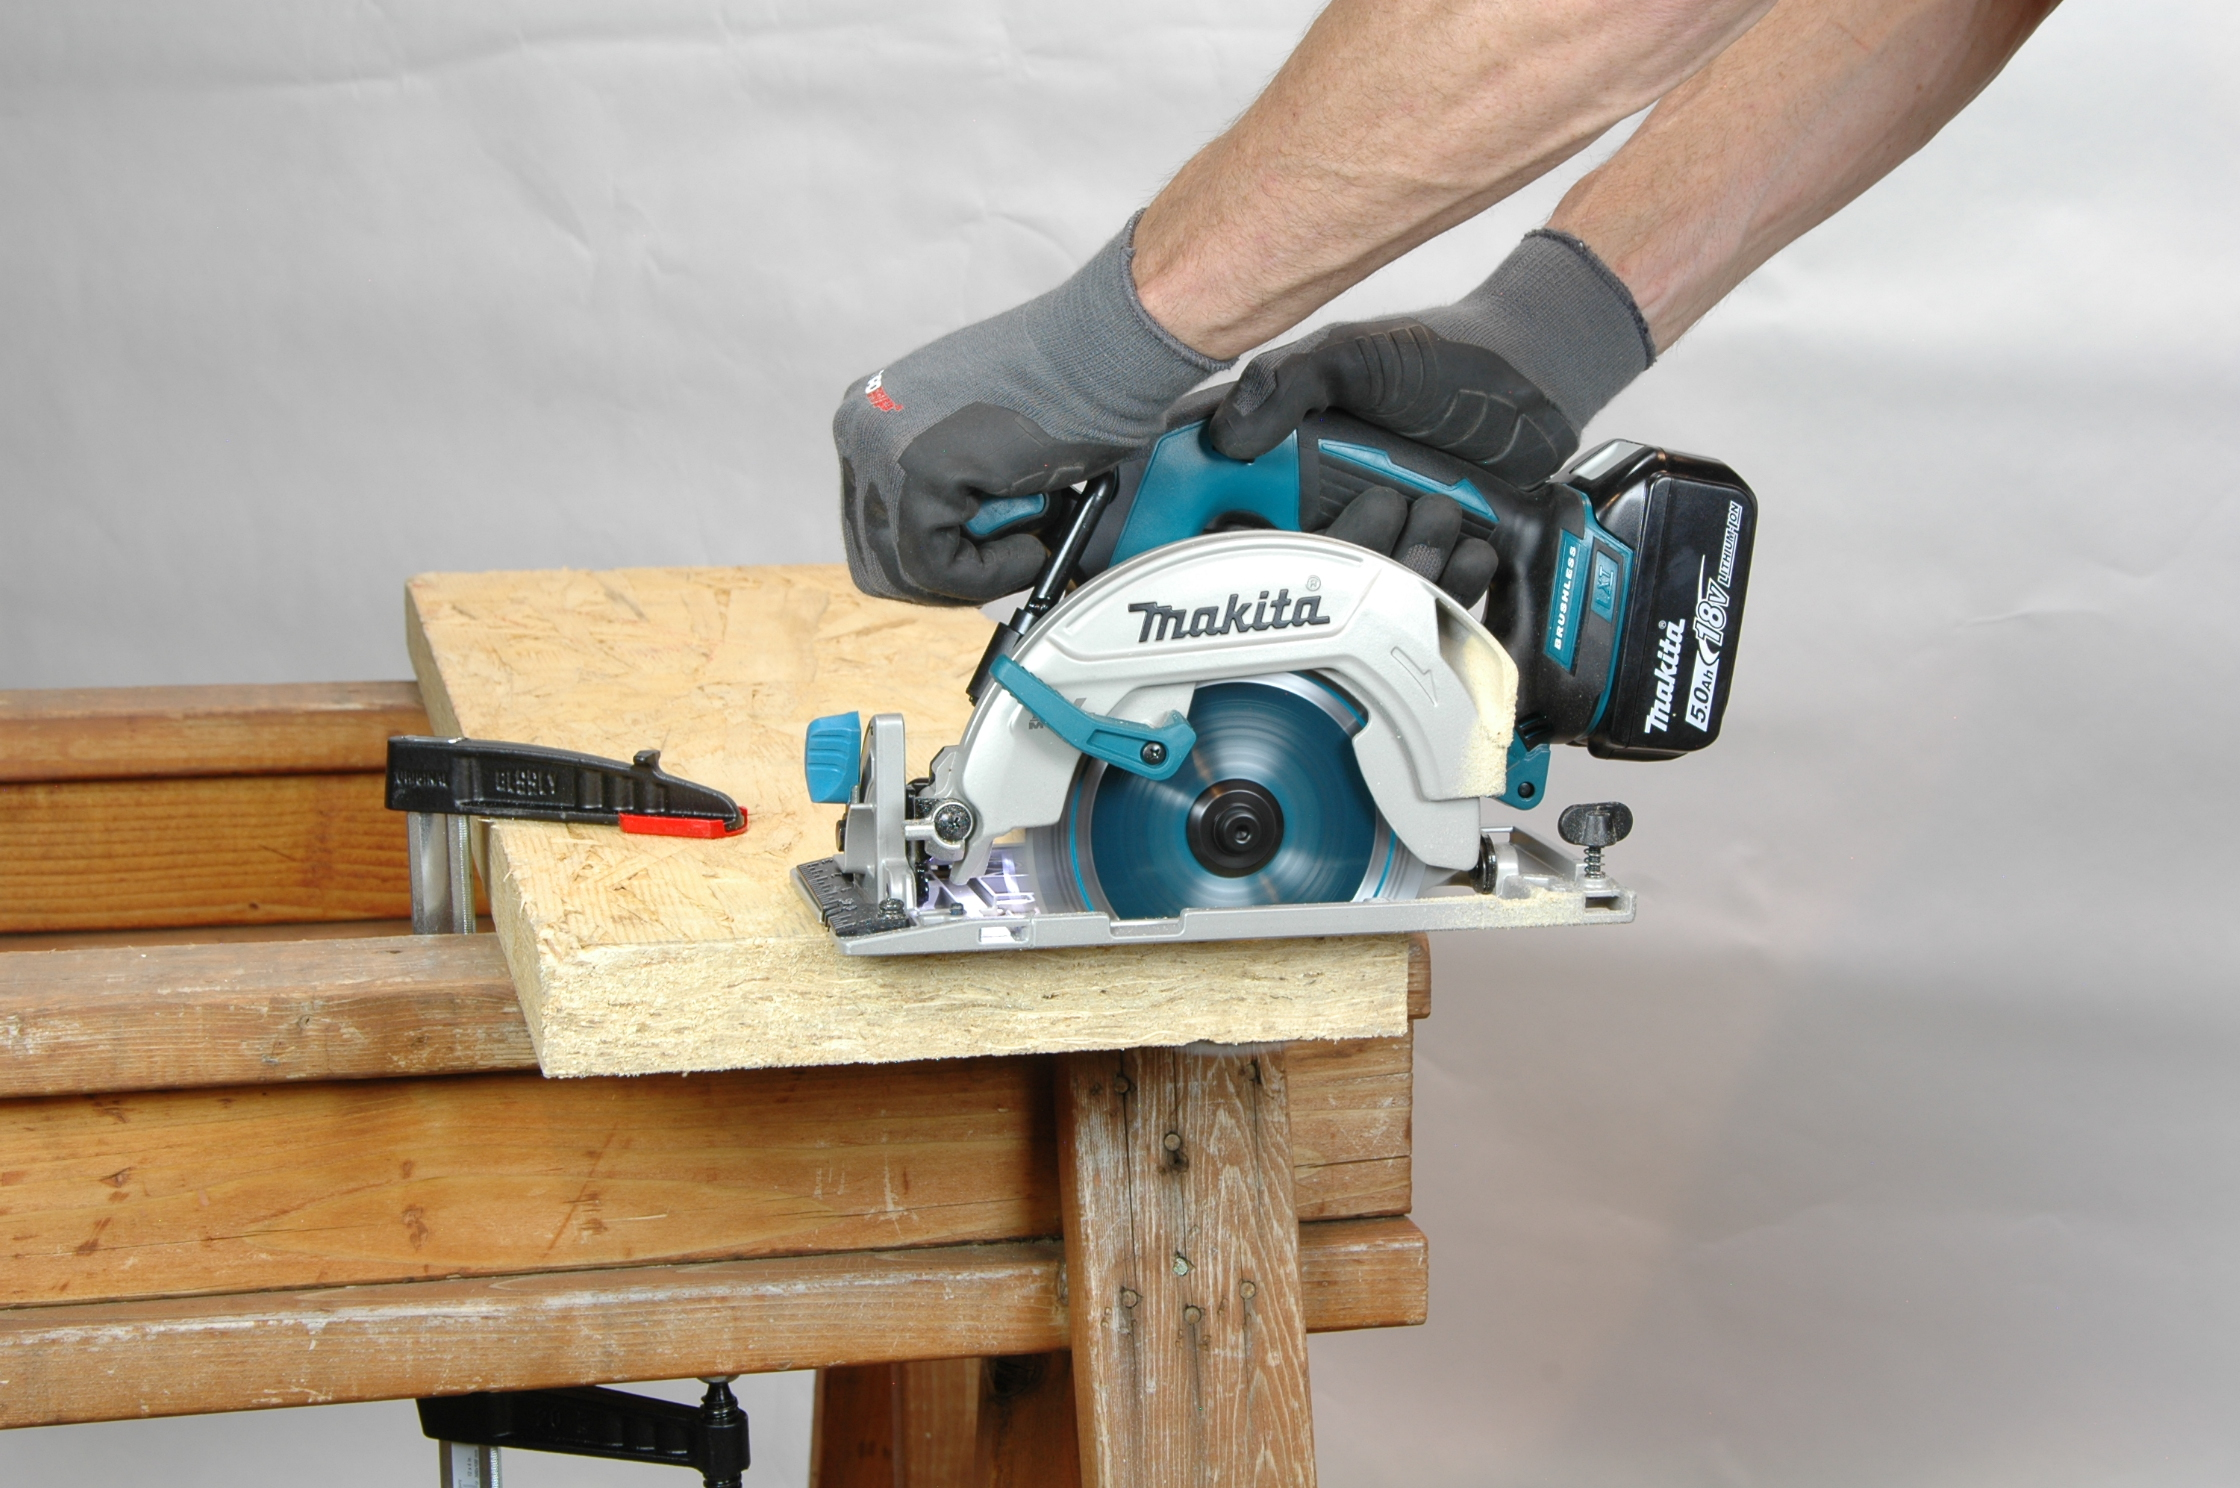 Power tool safety tips for circular saws